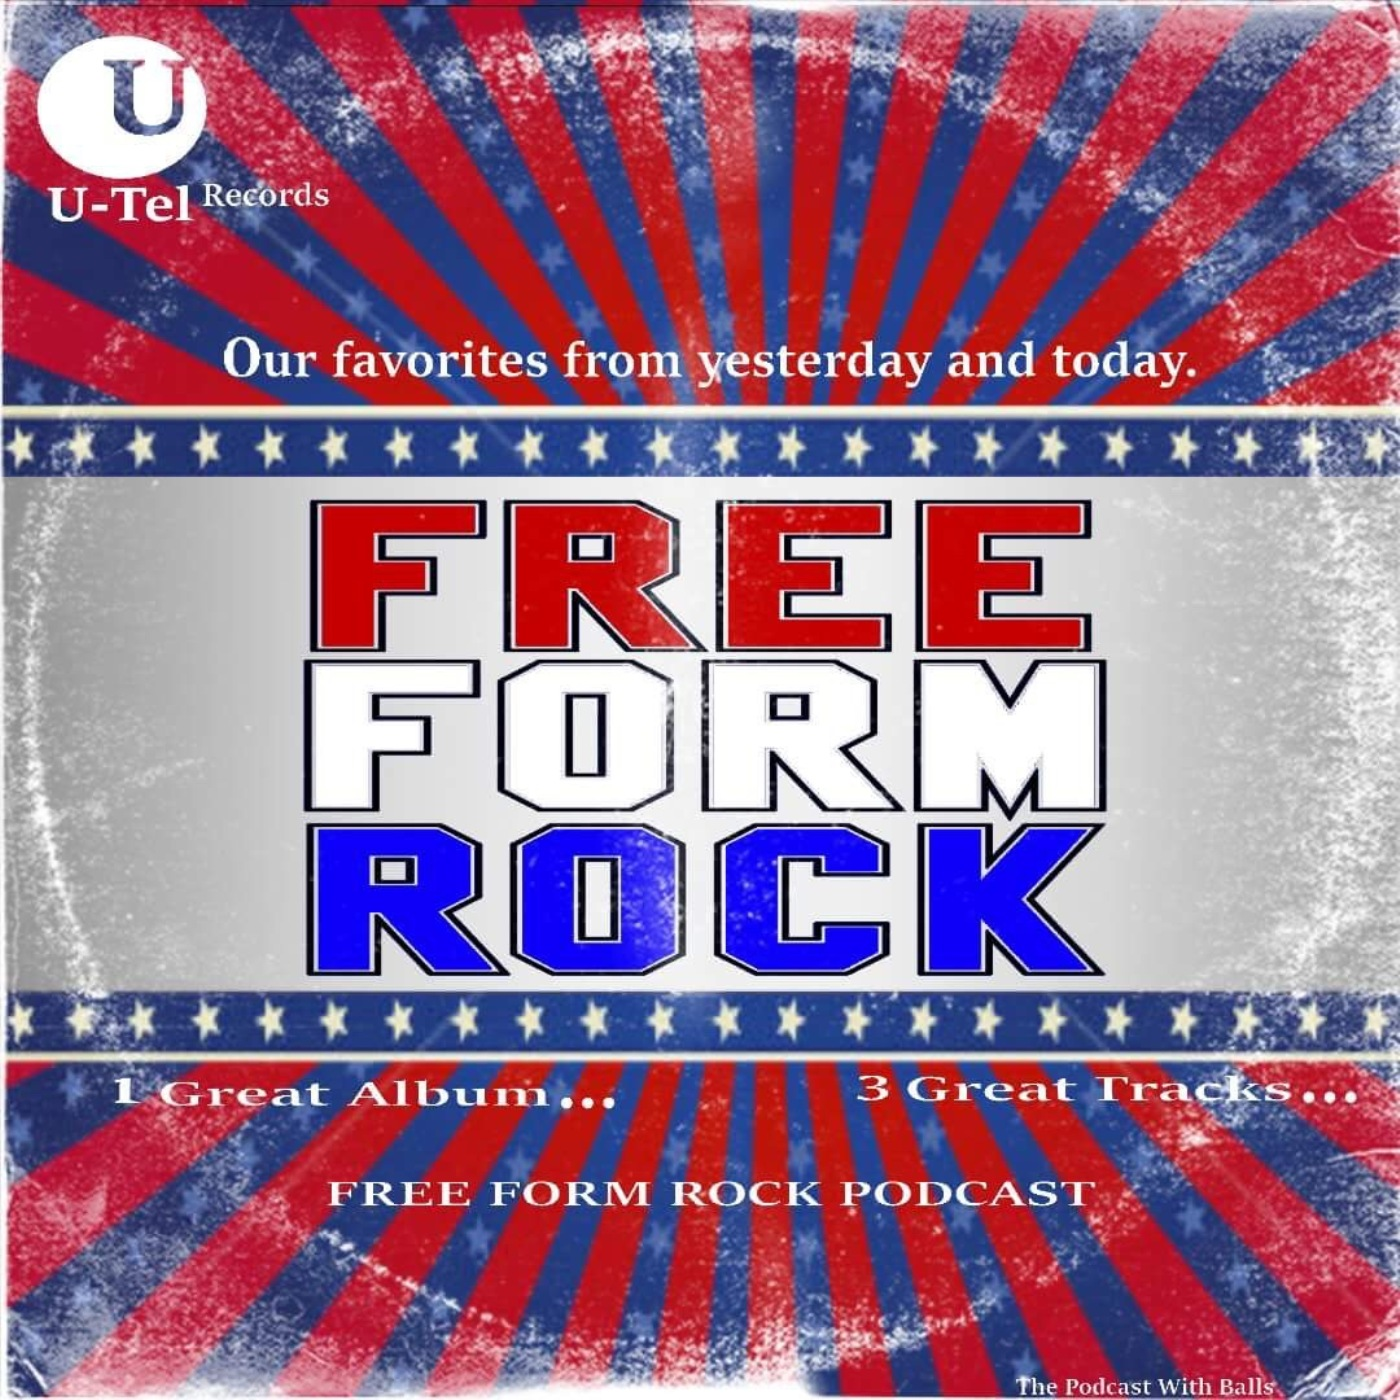 Free Form Rock Podcast